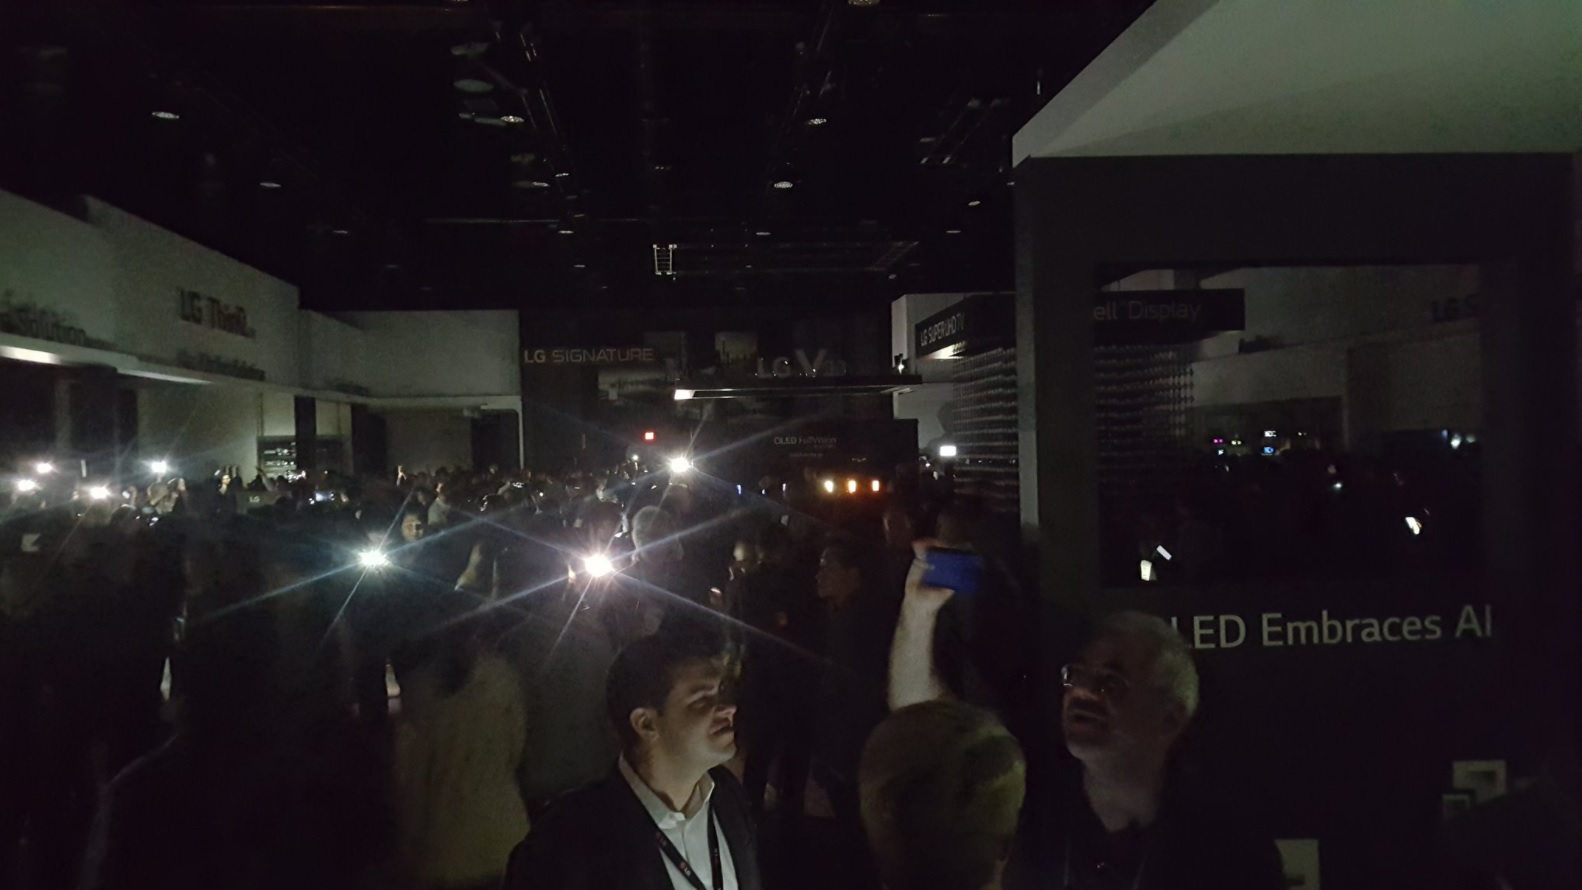 #CES 2018 | the Visitors had to spend several hours in the dark